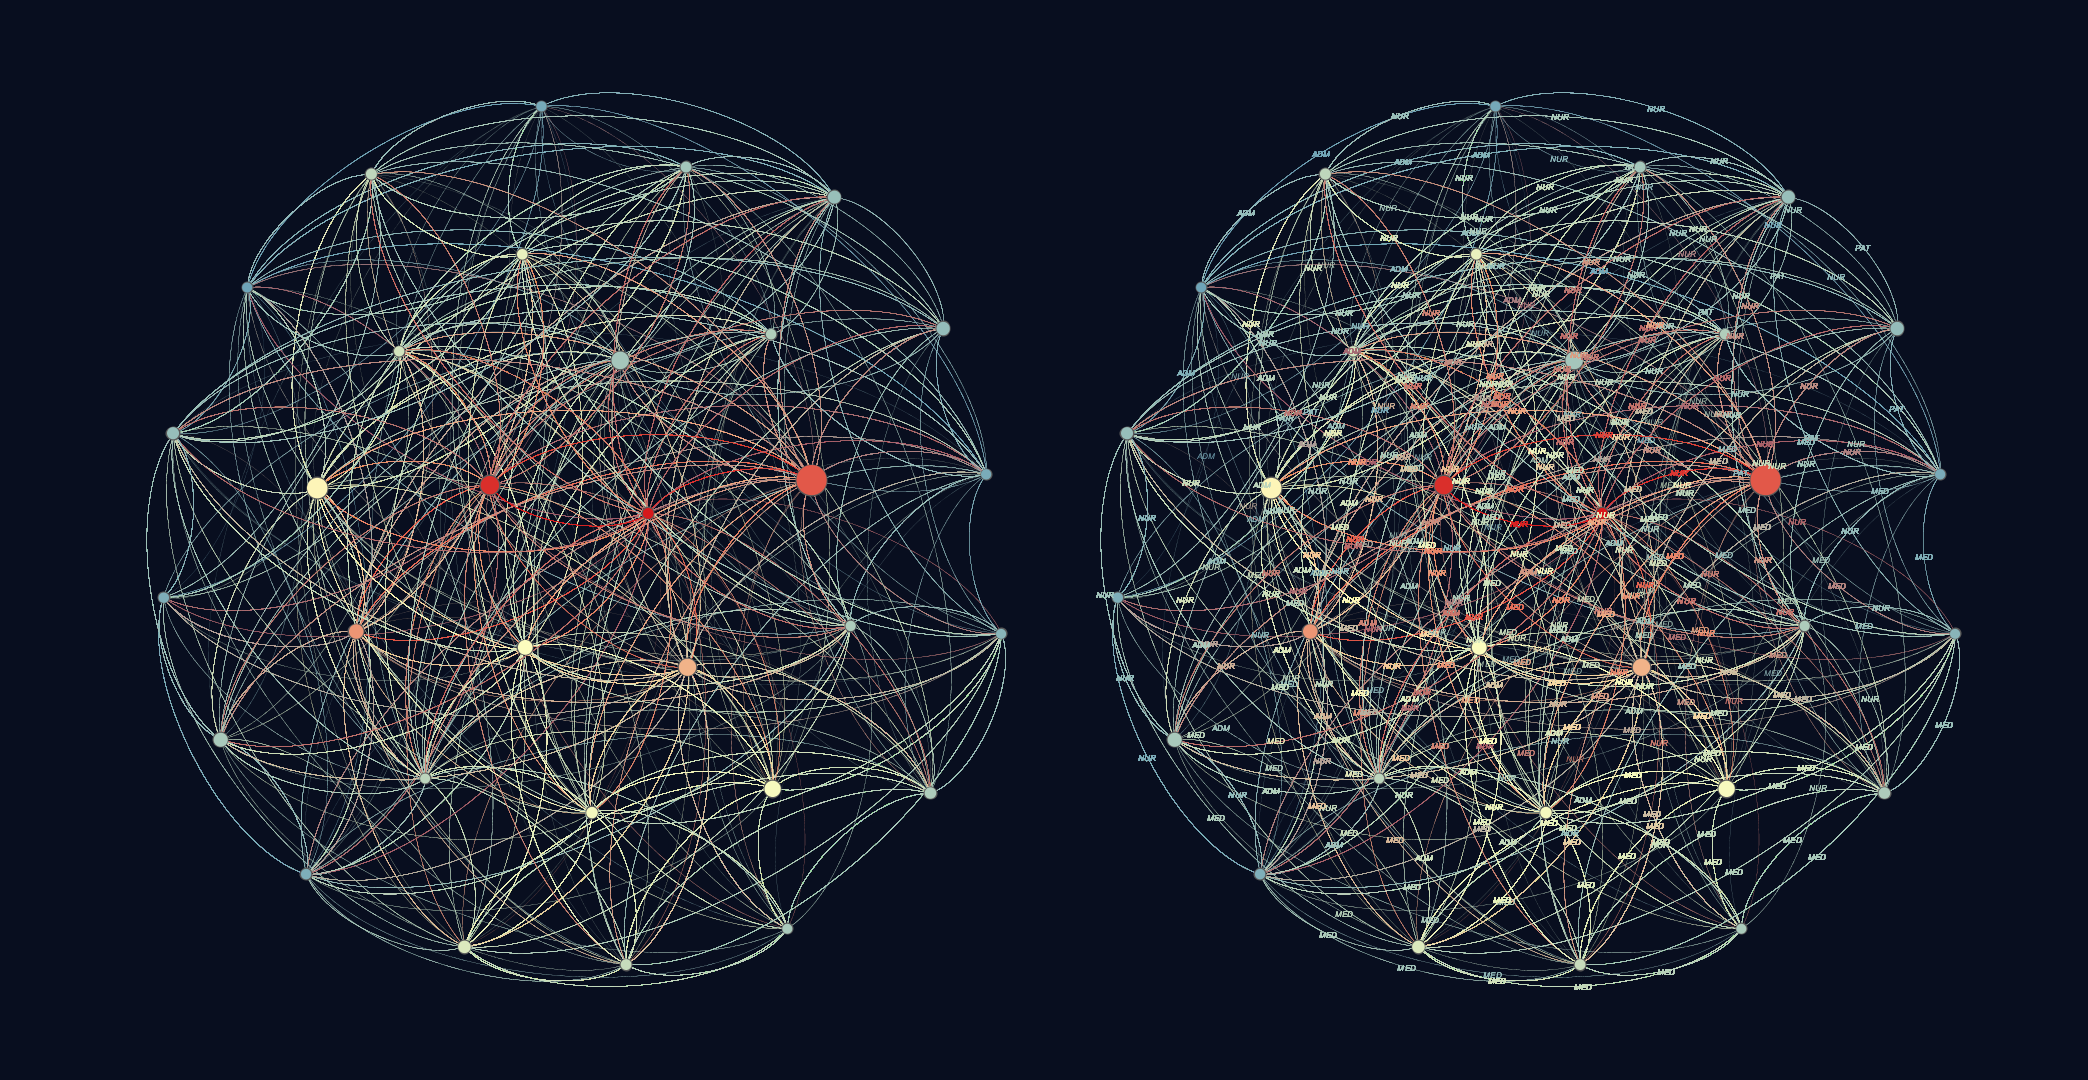 A dual network plot of hospital ward contact